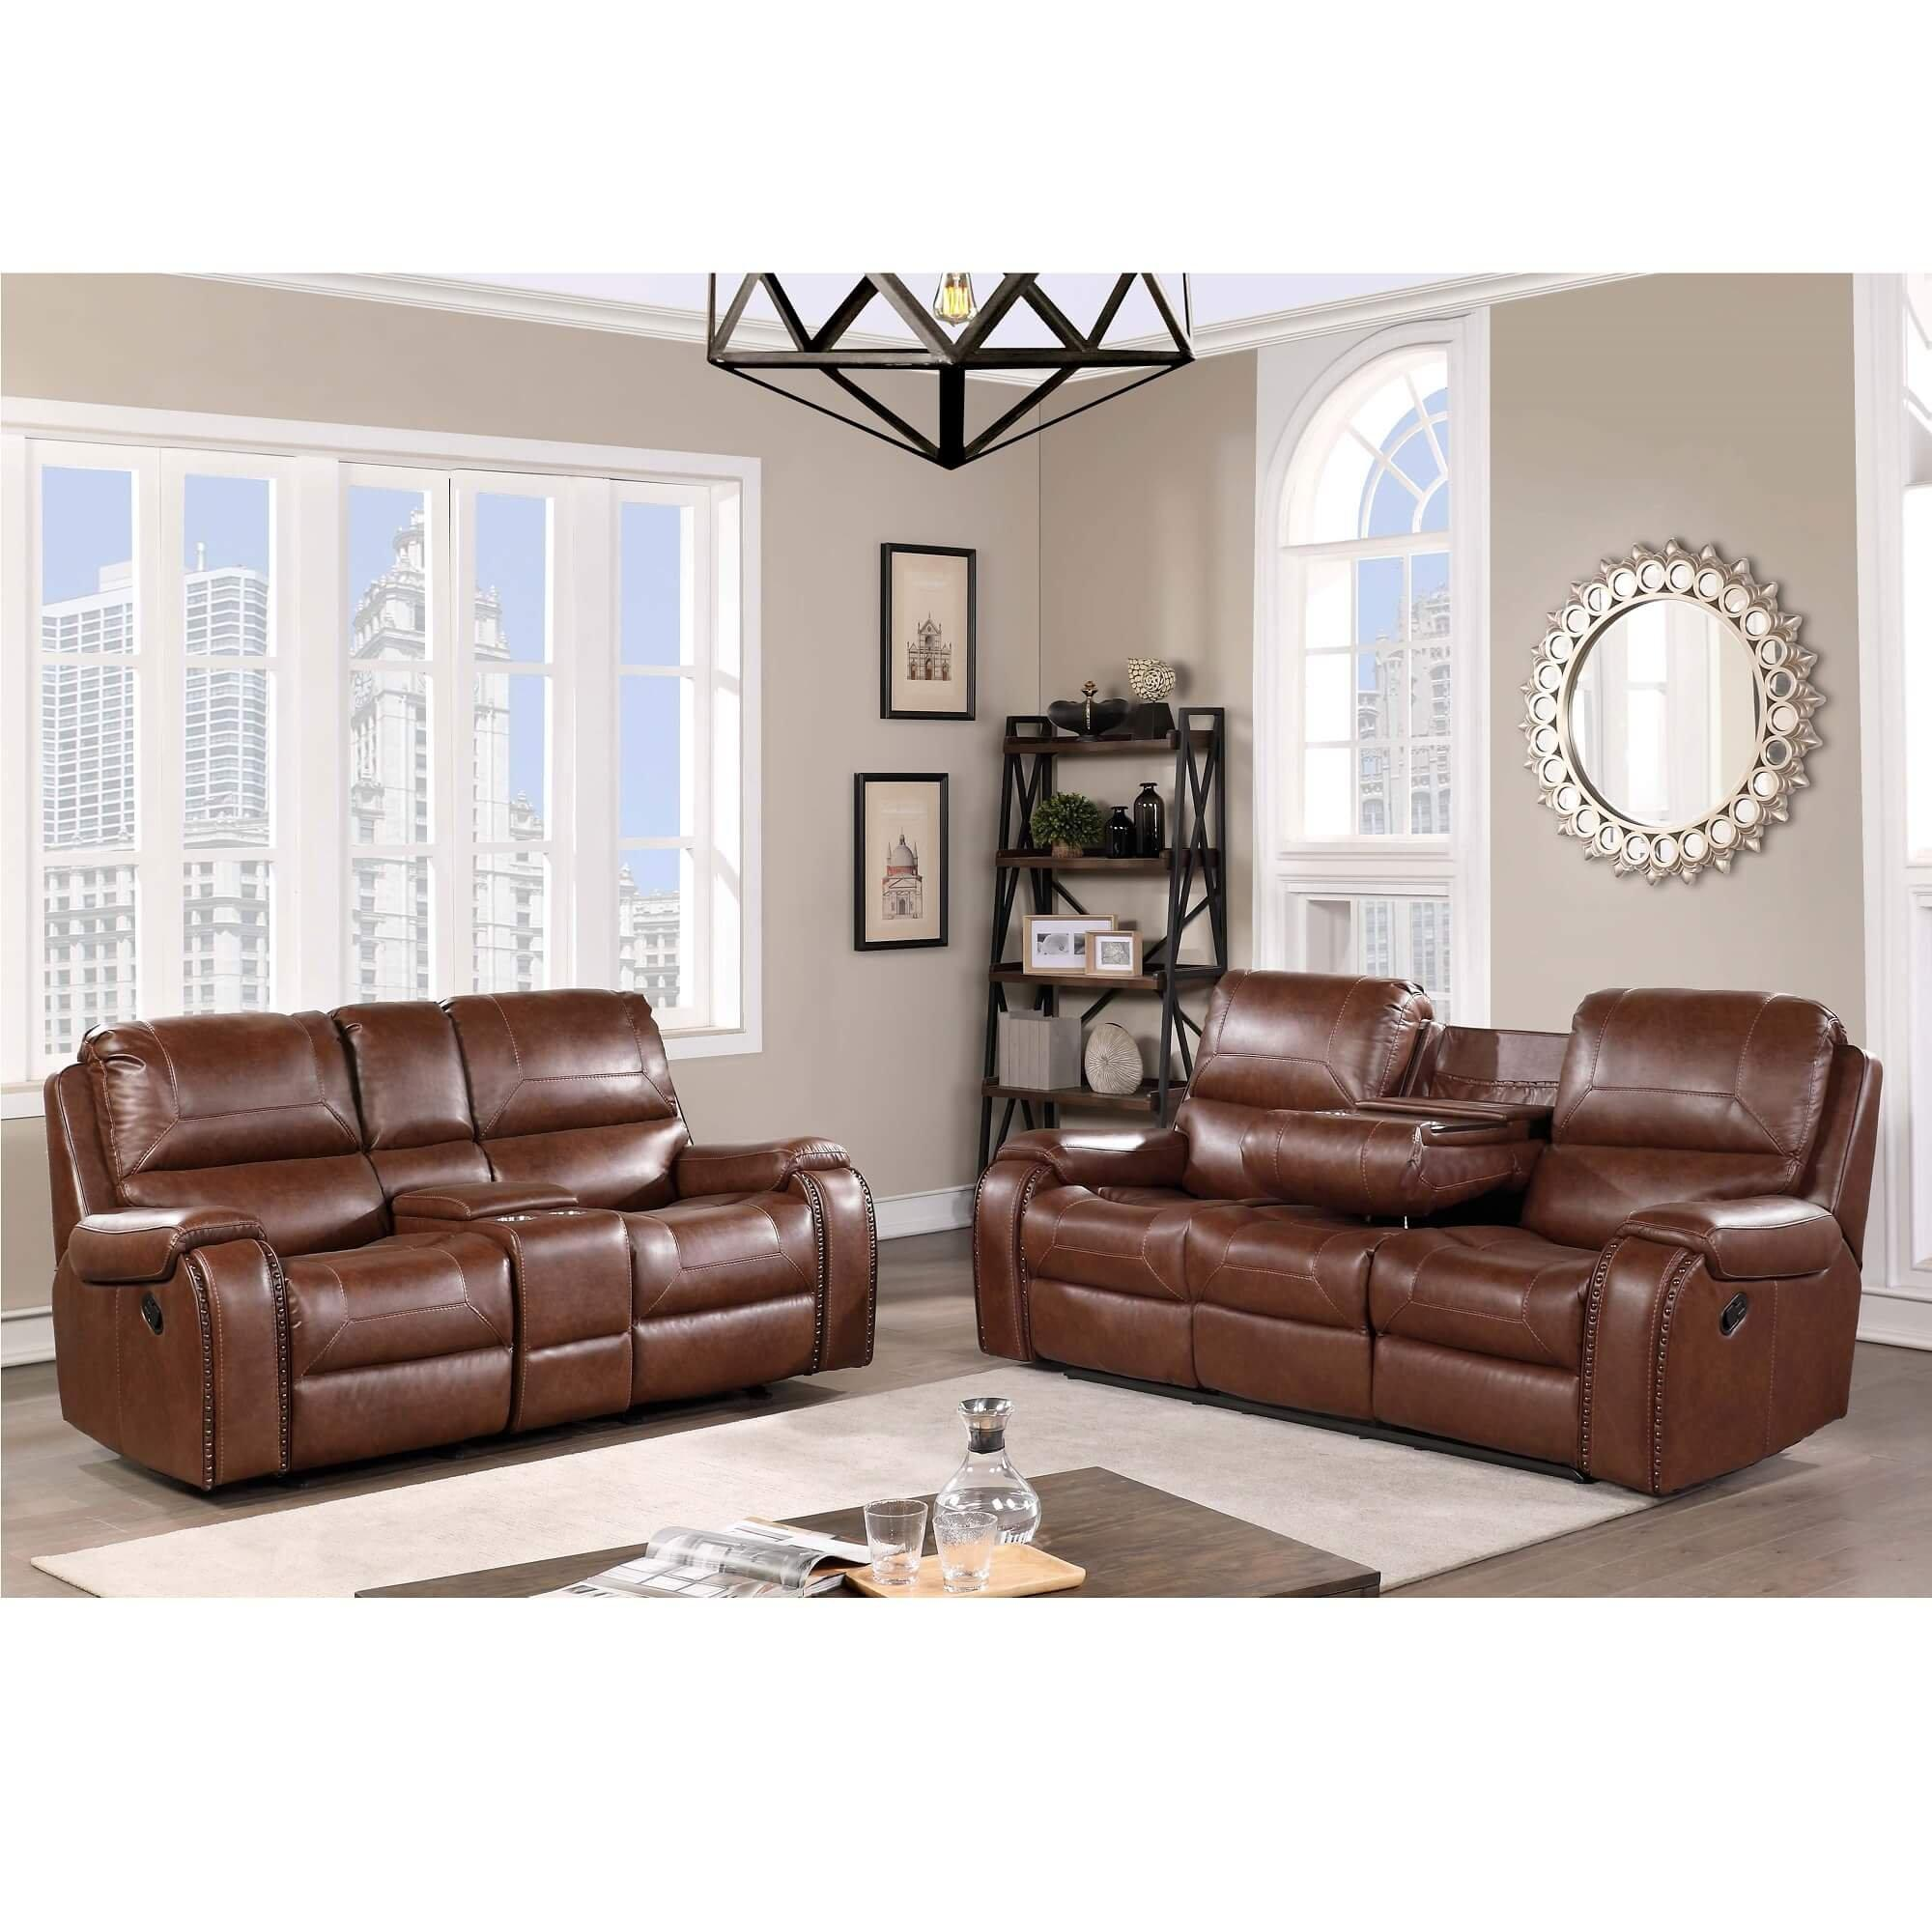 Rent to Own H317 2-Piece Shiloh Reclining Sofa & Loveseat at Aaron's today!